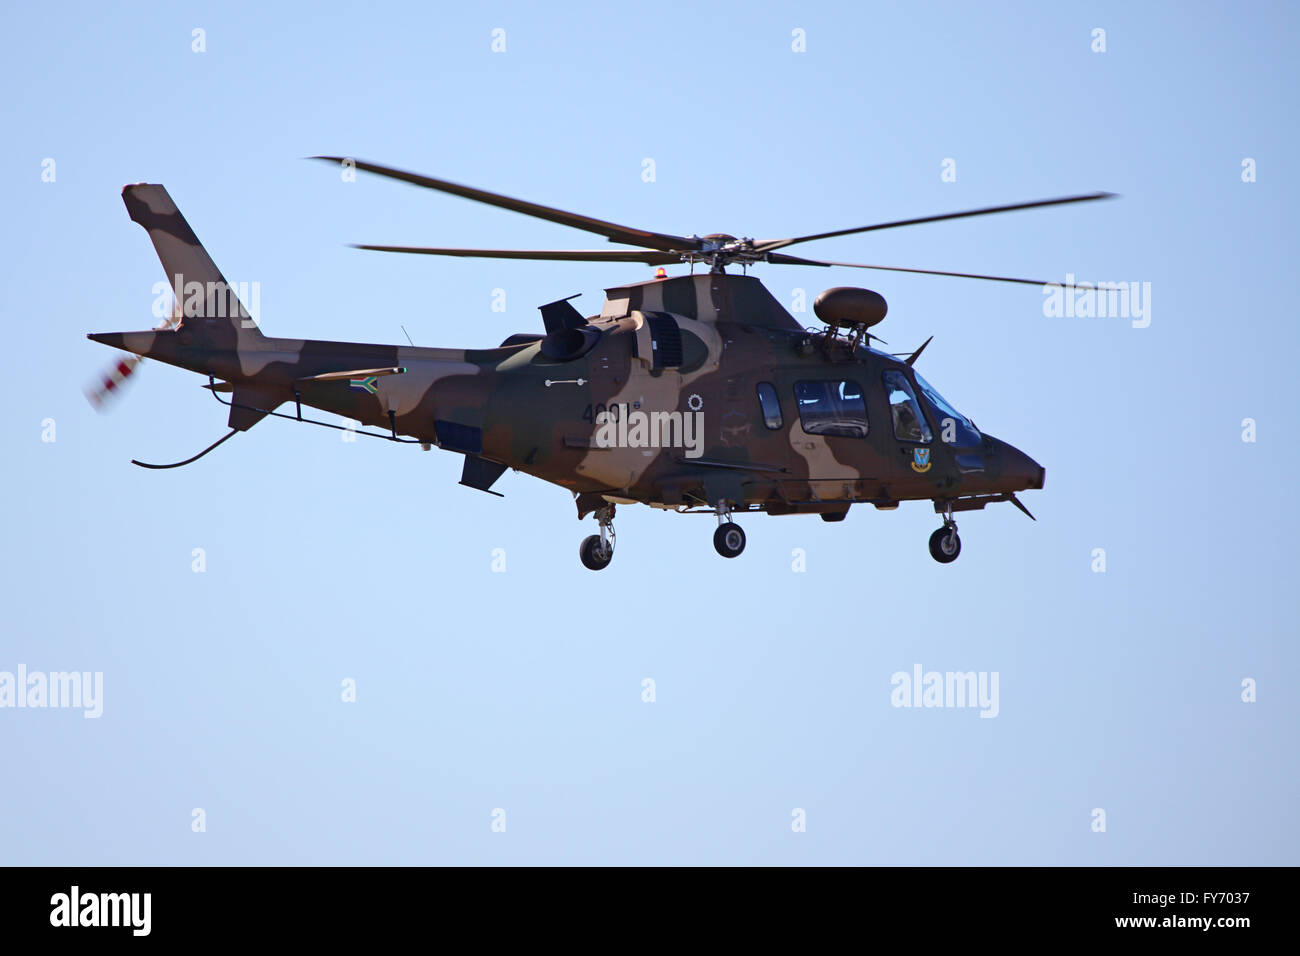 Military Helicopter flyby - Stock Image